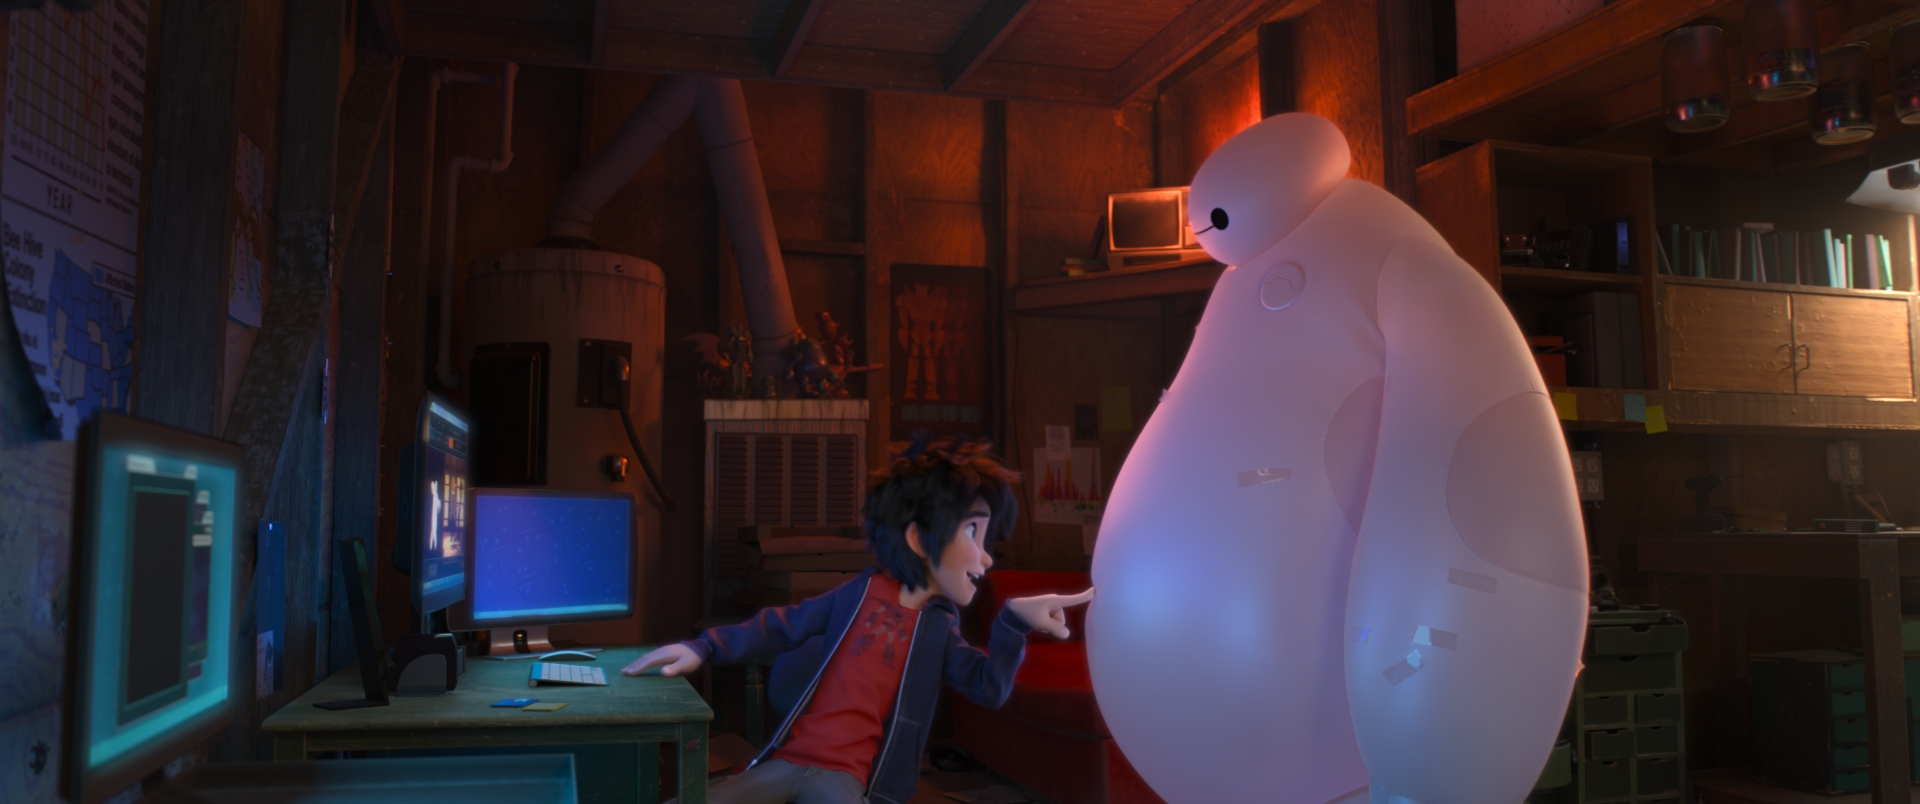 Datei:Hiro and Baymax.png